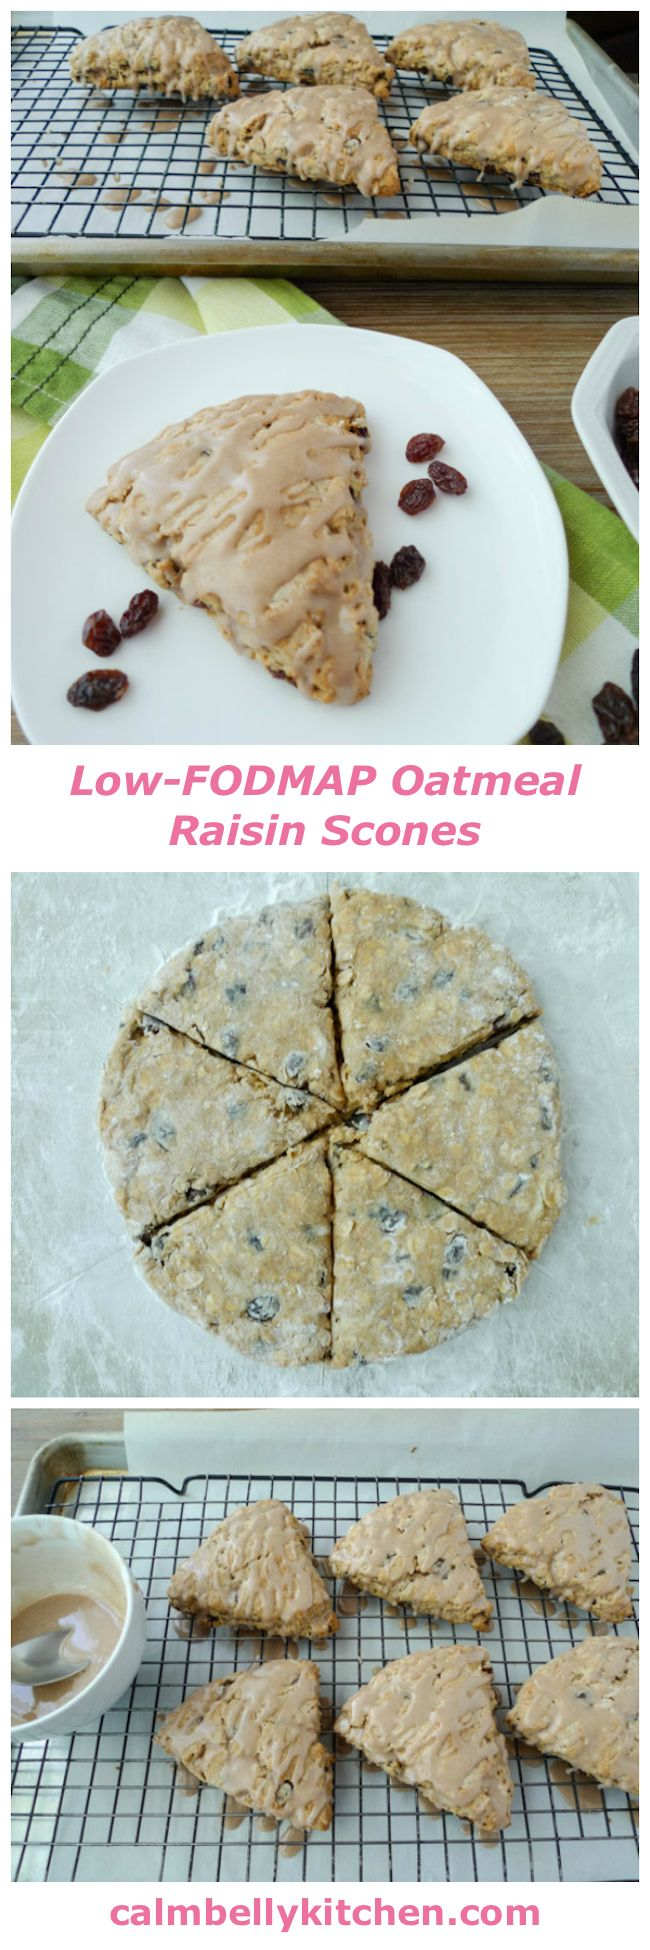 Low-FODMAP, gluten free scones with oats, raisins and cinnamon glaze. You'd never know they're gluten free!